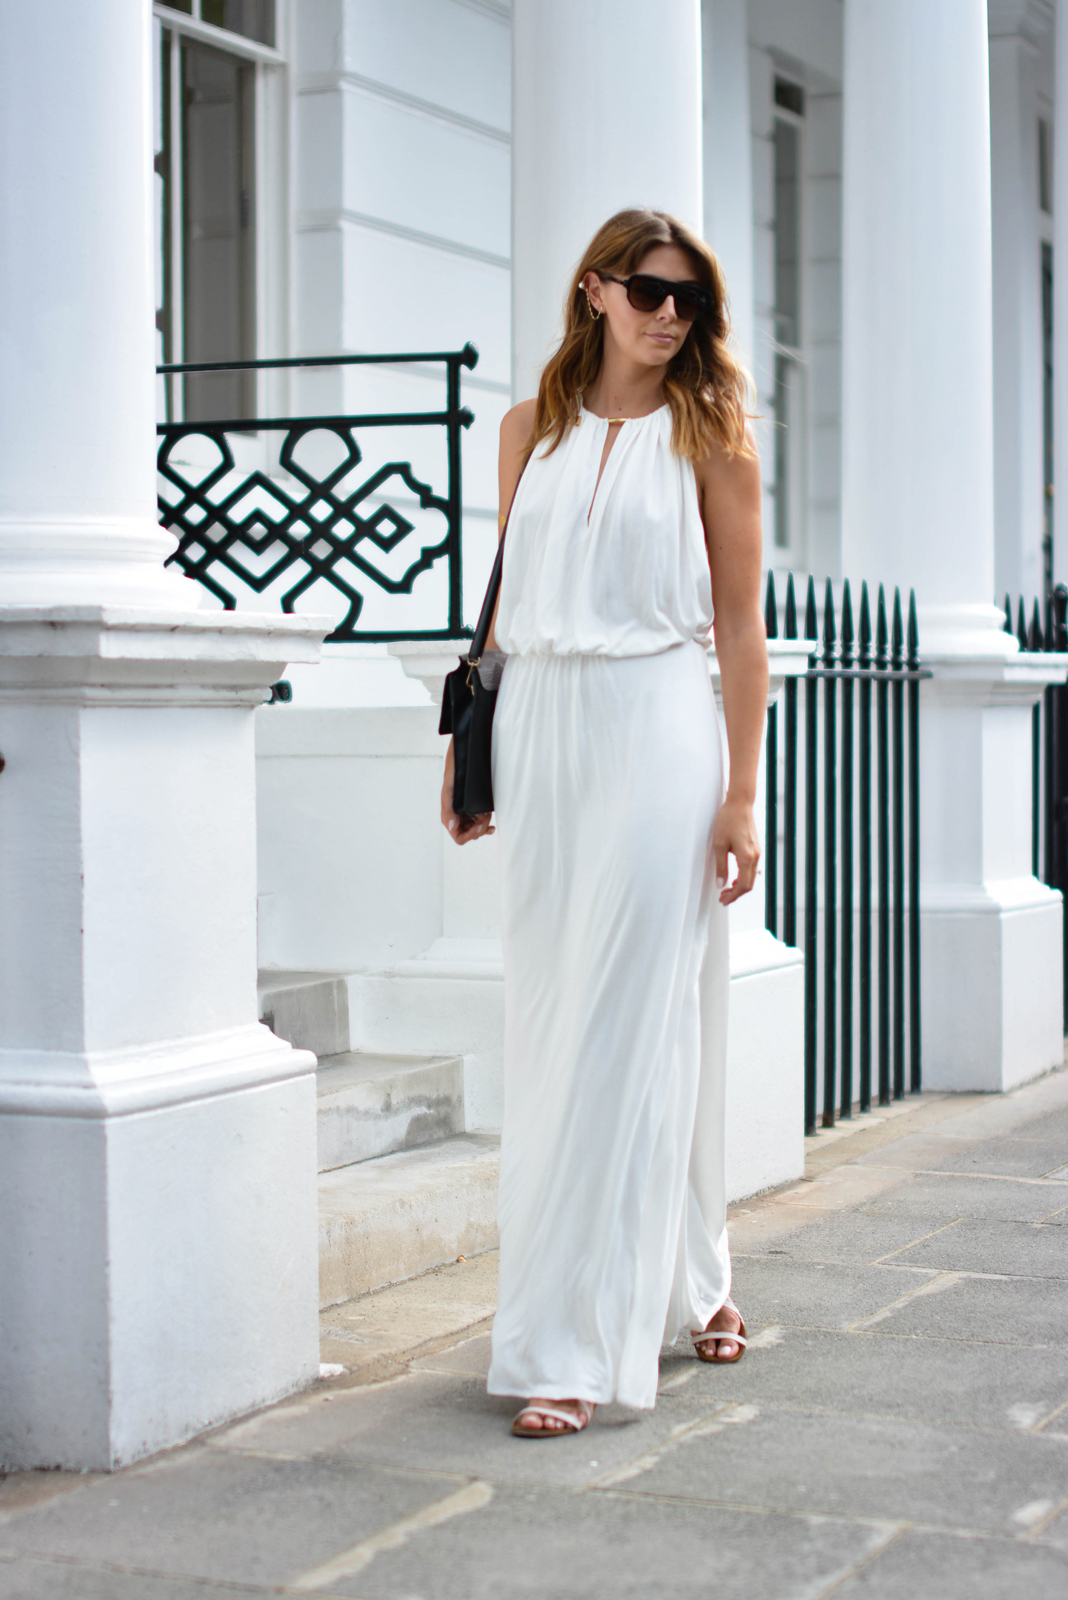 EJSTYLE - Melissa Odabash Rachel white grecian dress, gold chain and pearl ear cuff, Chloe Faye bag, summer outfit, beach cafe uk